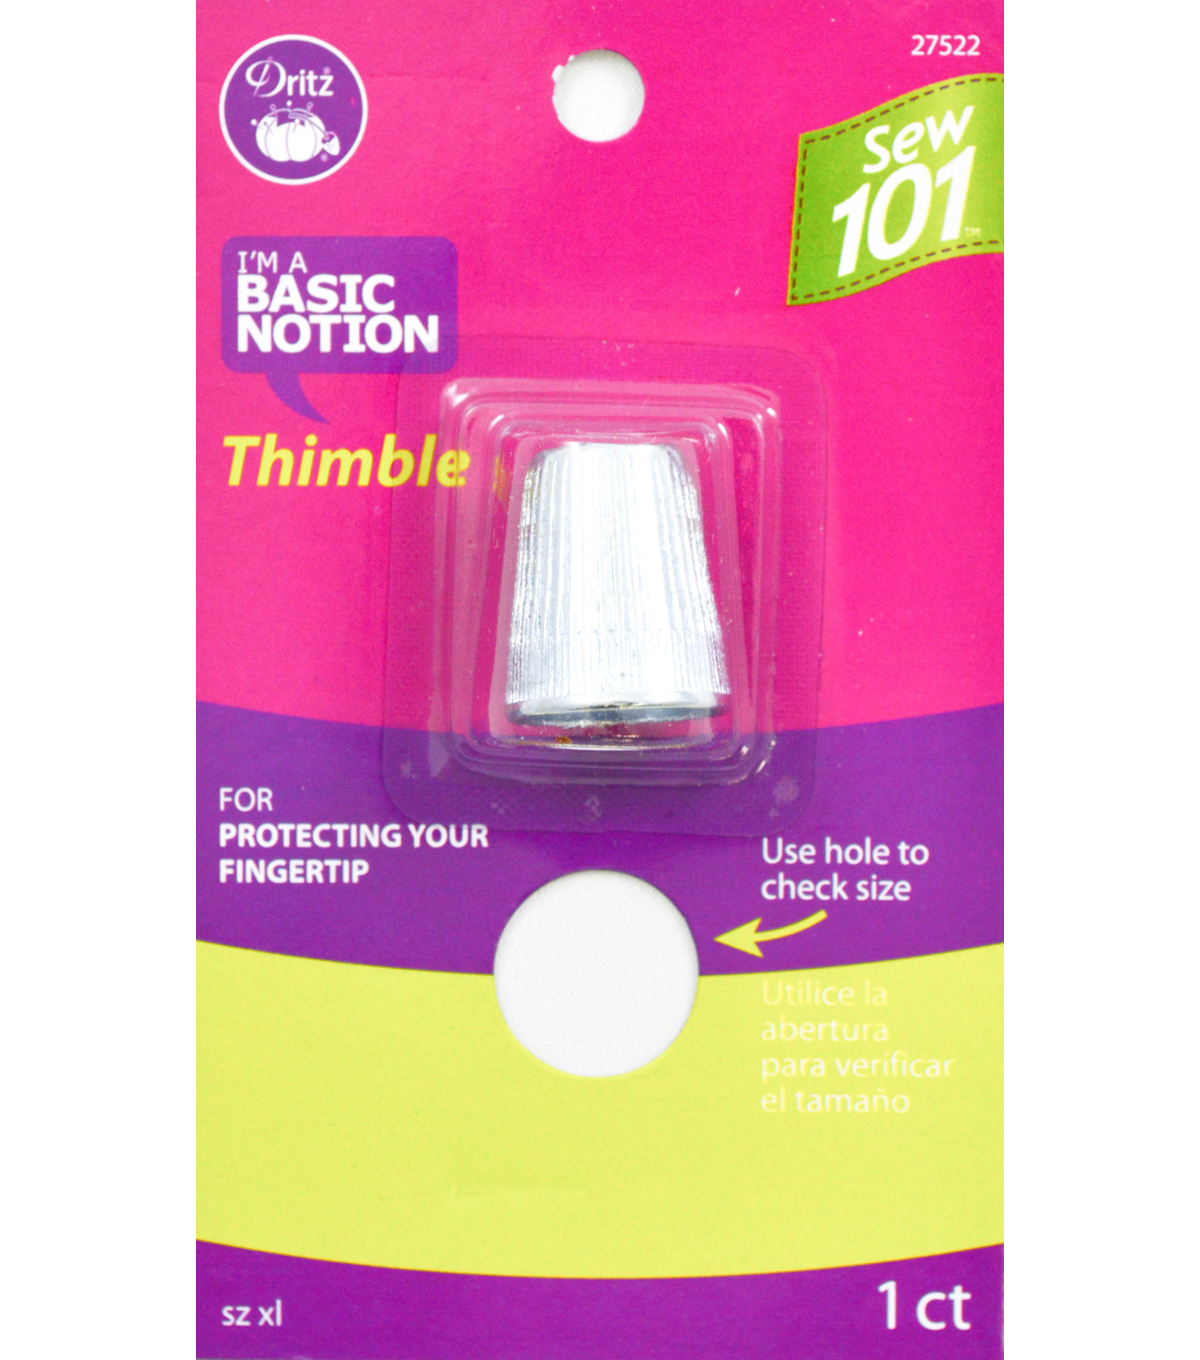 Dritz Sewing 101 Thimble Size XL